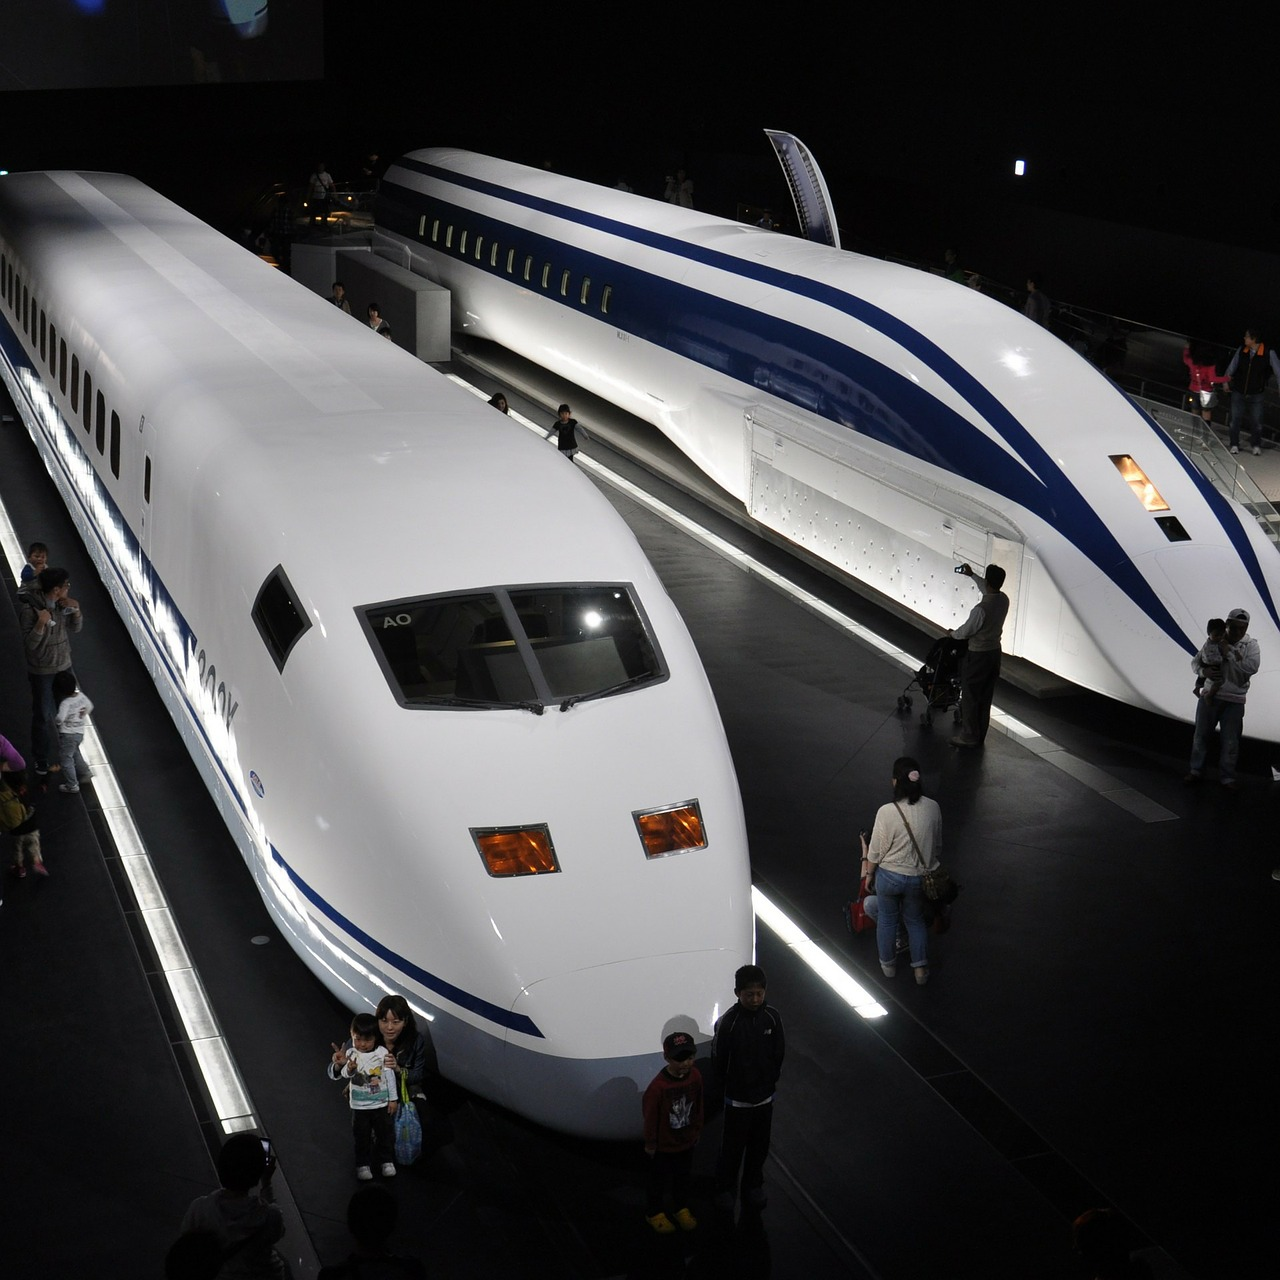 Japan tests new high speed train